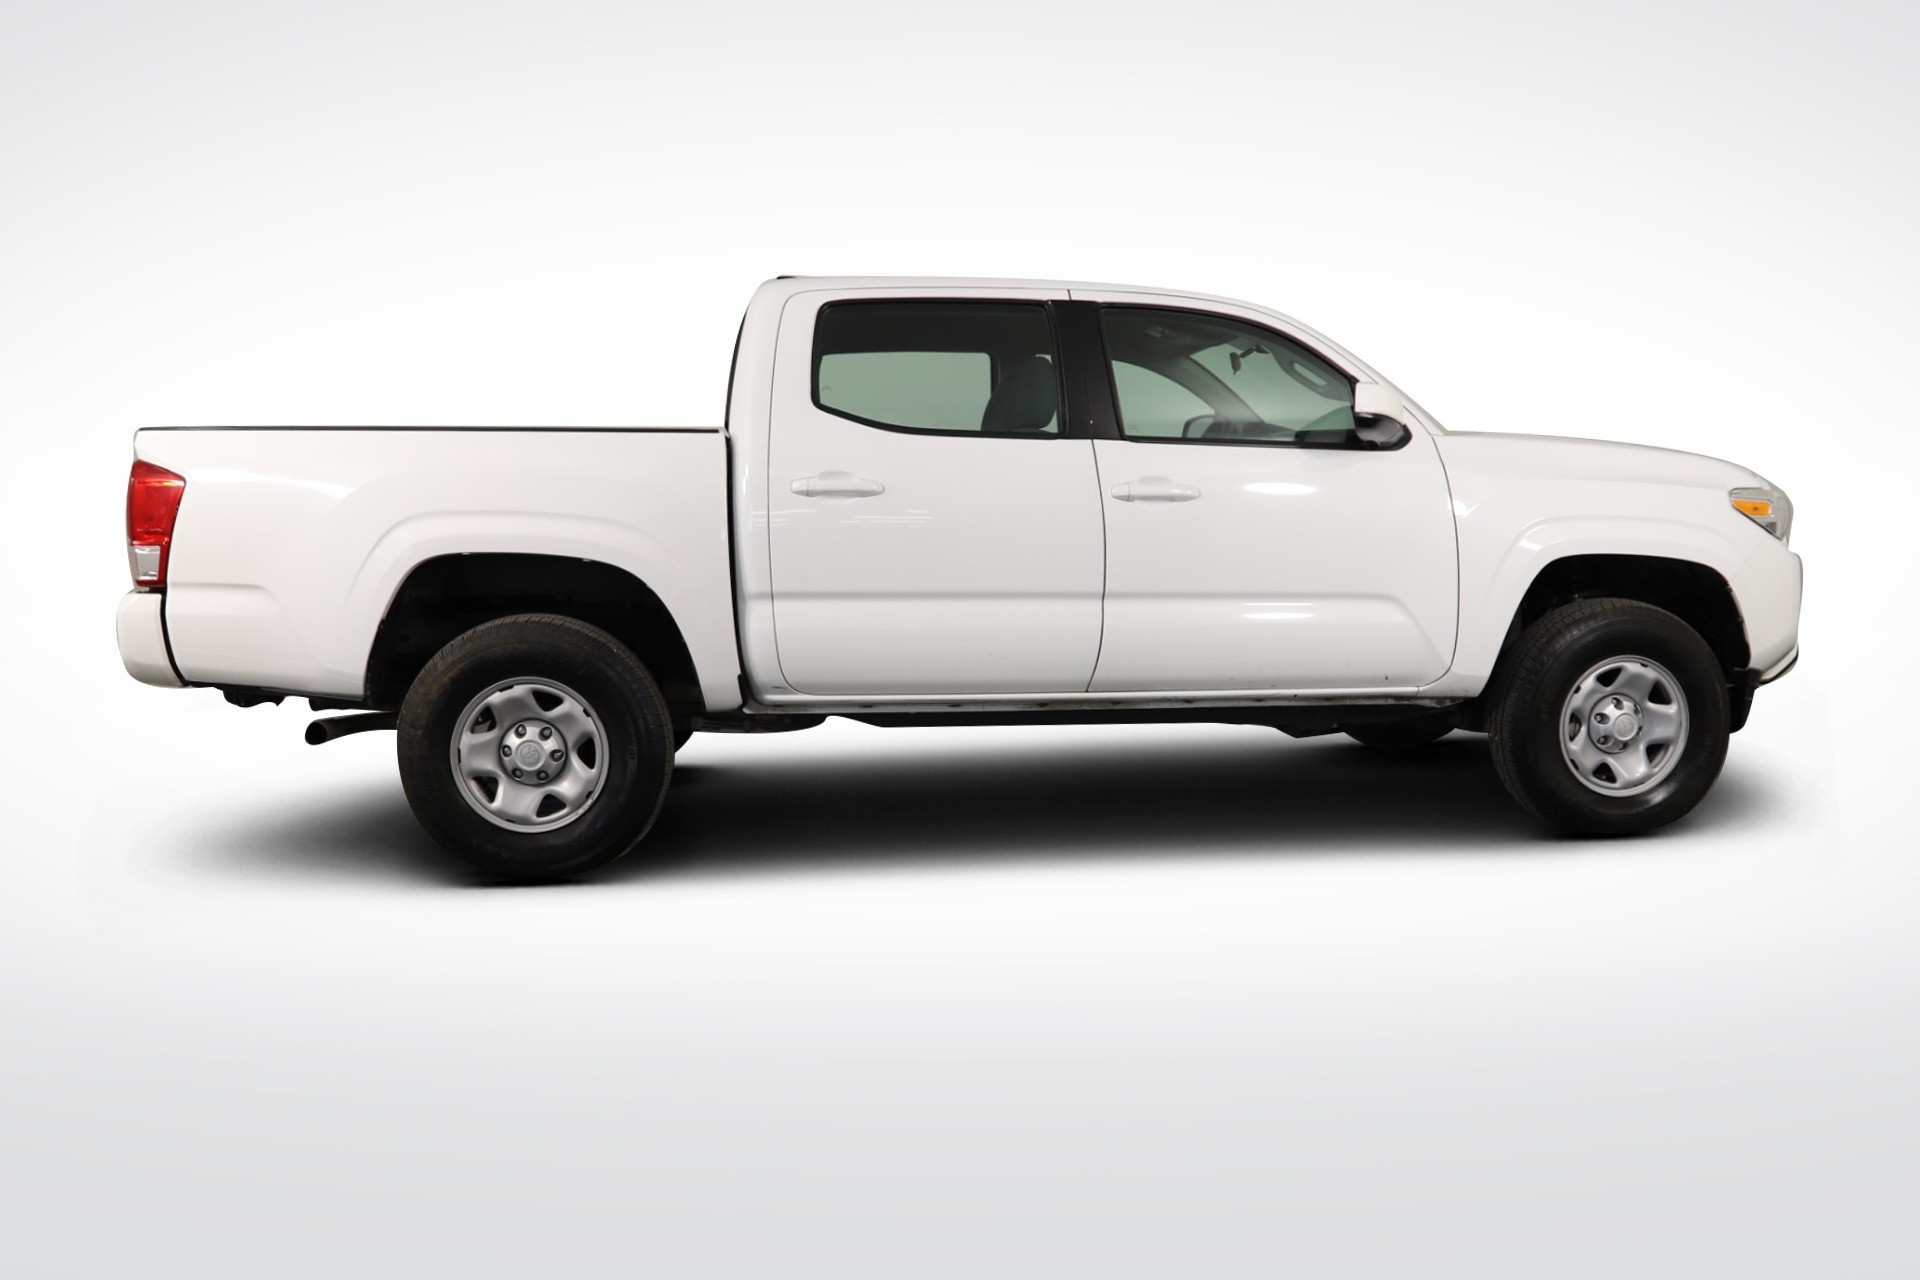 Tacoma vs. Tundra: Everything You Need To Know About Toyota's Pickup Trucks